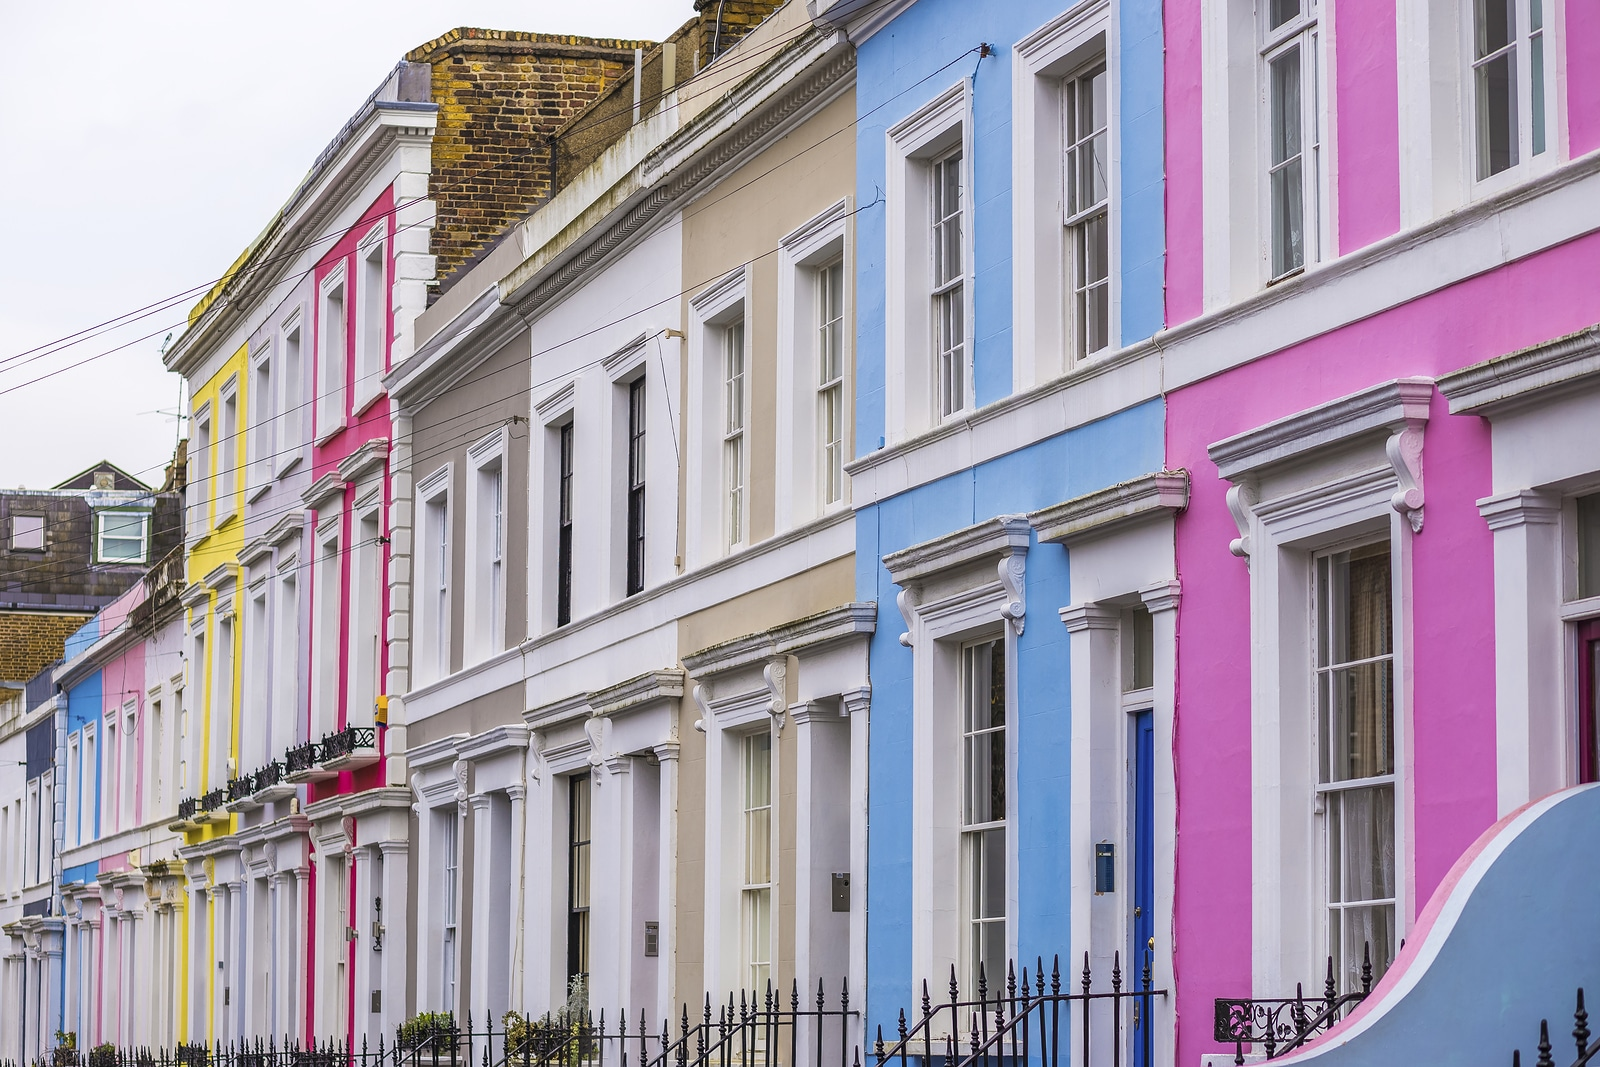 Colorful row houses in London's Notting Hill.